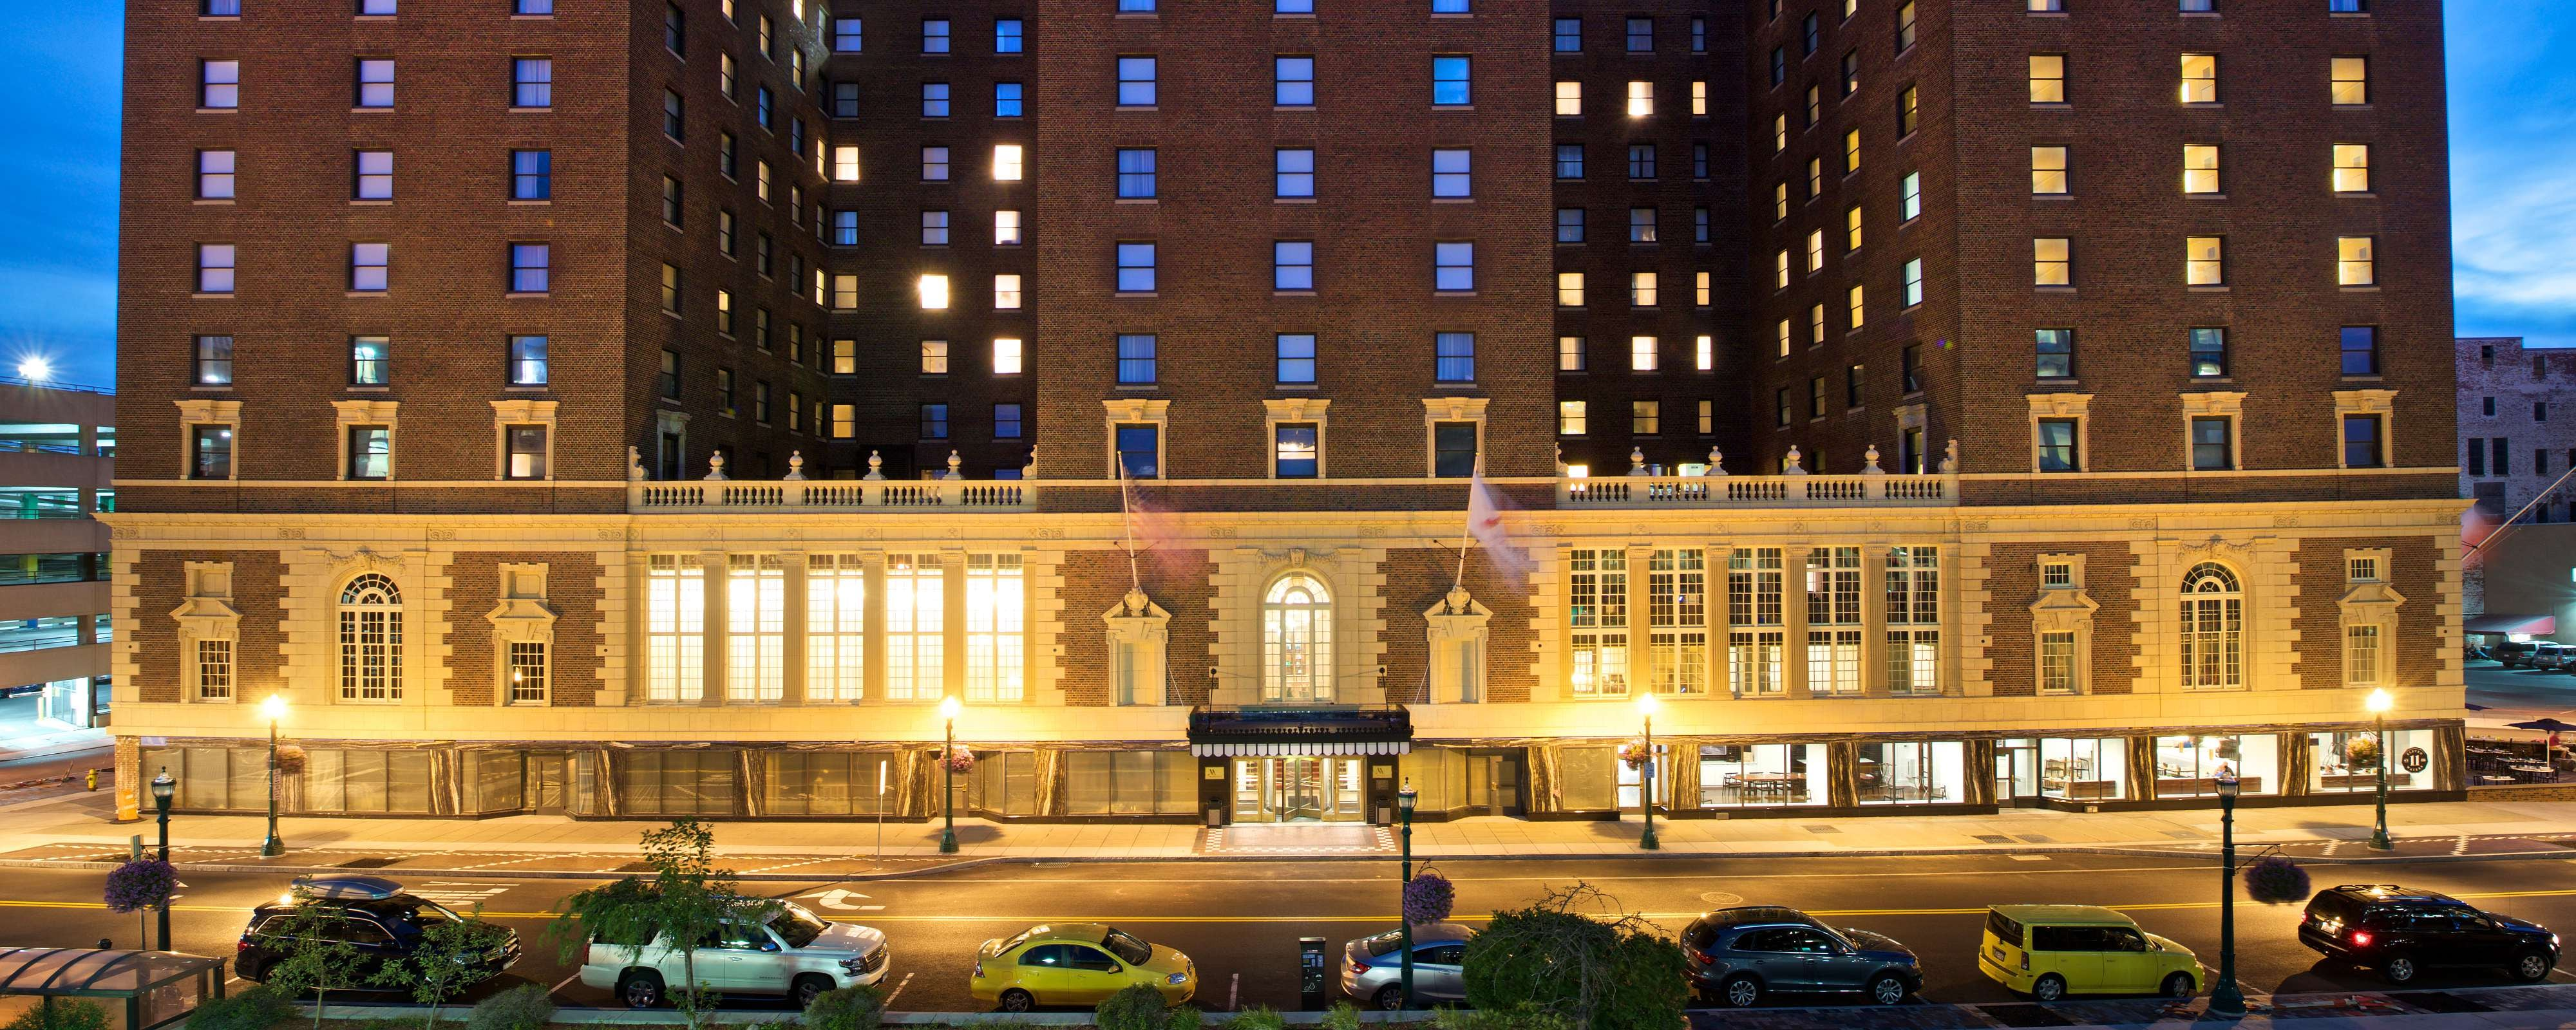 Hotel In Downtown Syracuse Ny Marriott Syracuse Downtown